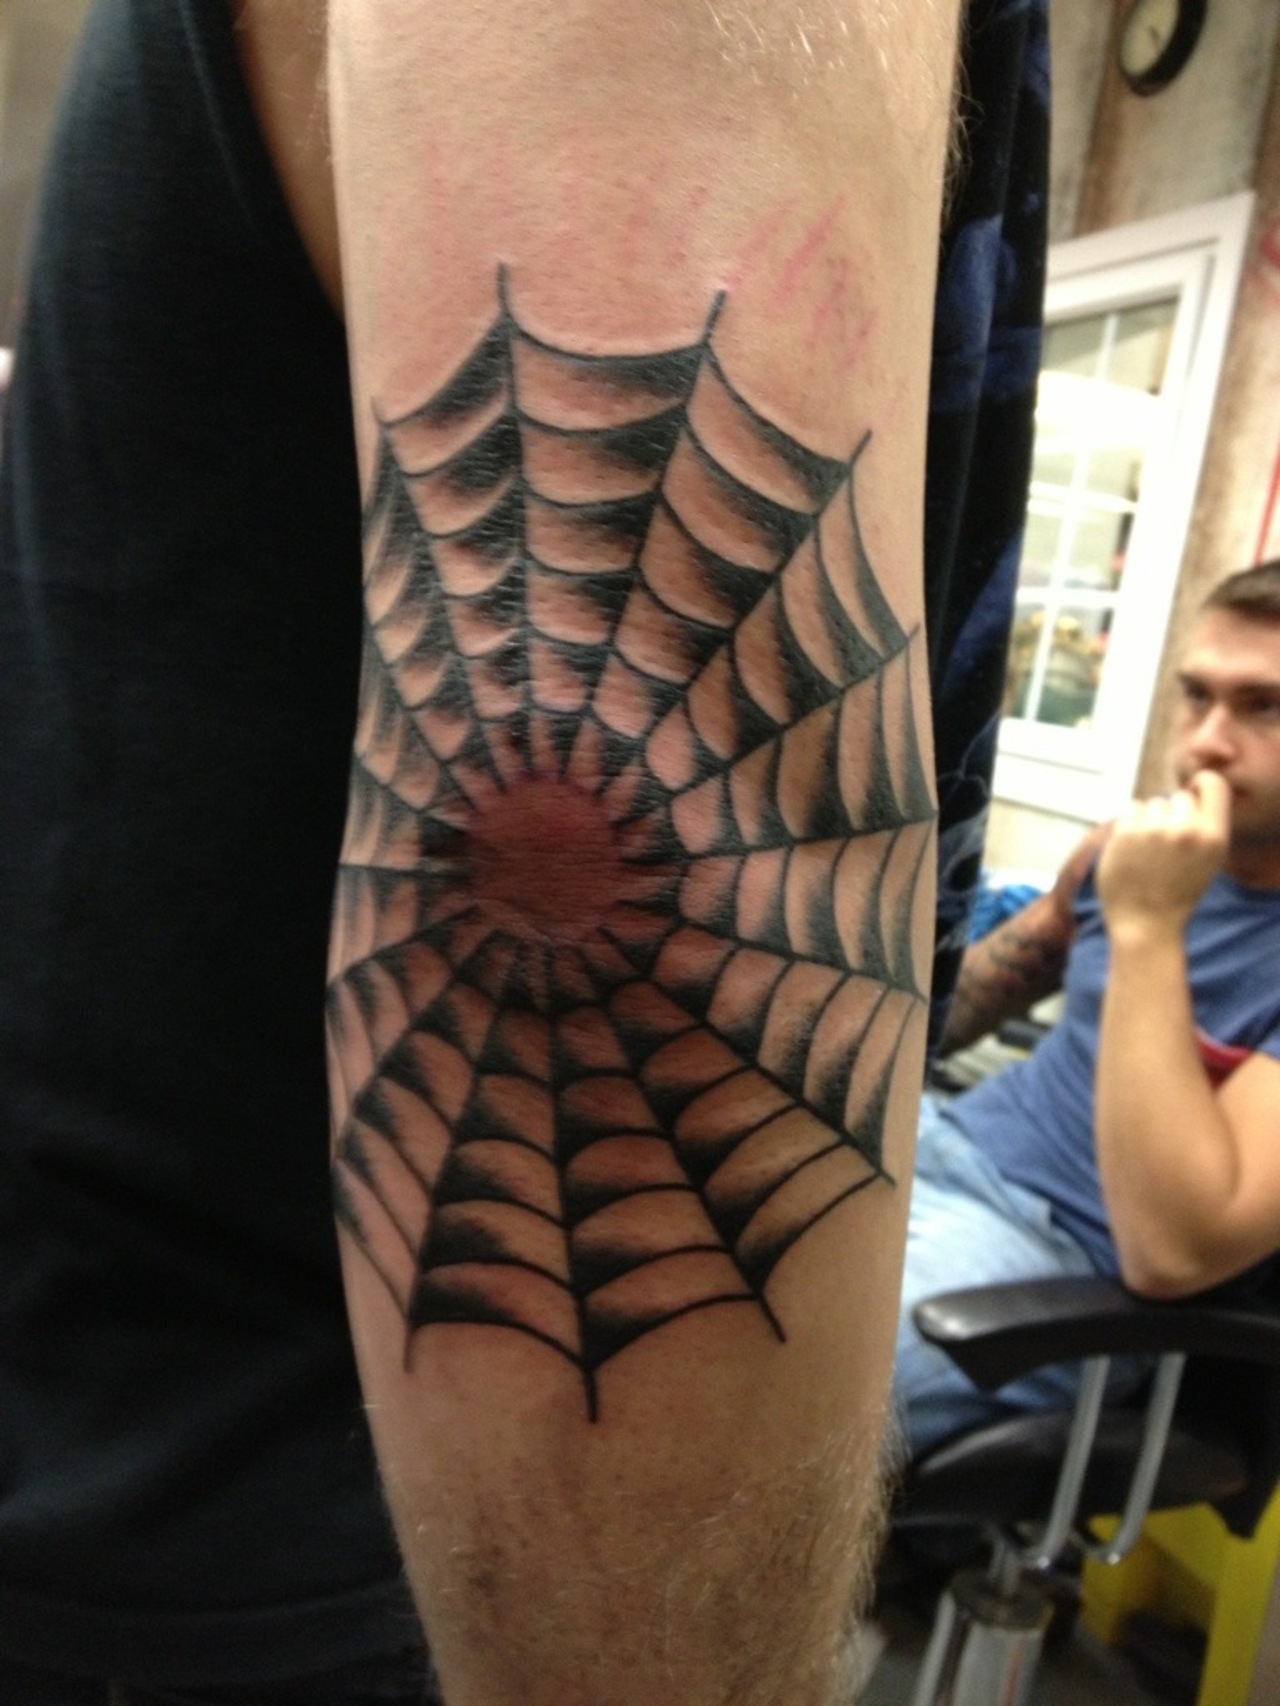 Spider Web Tattoos Designs, Ideas and Meaning | Tattoos